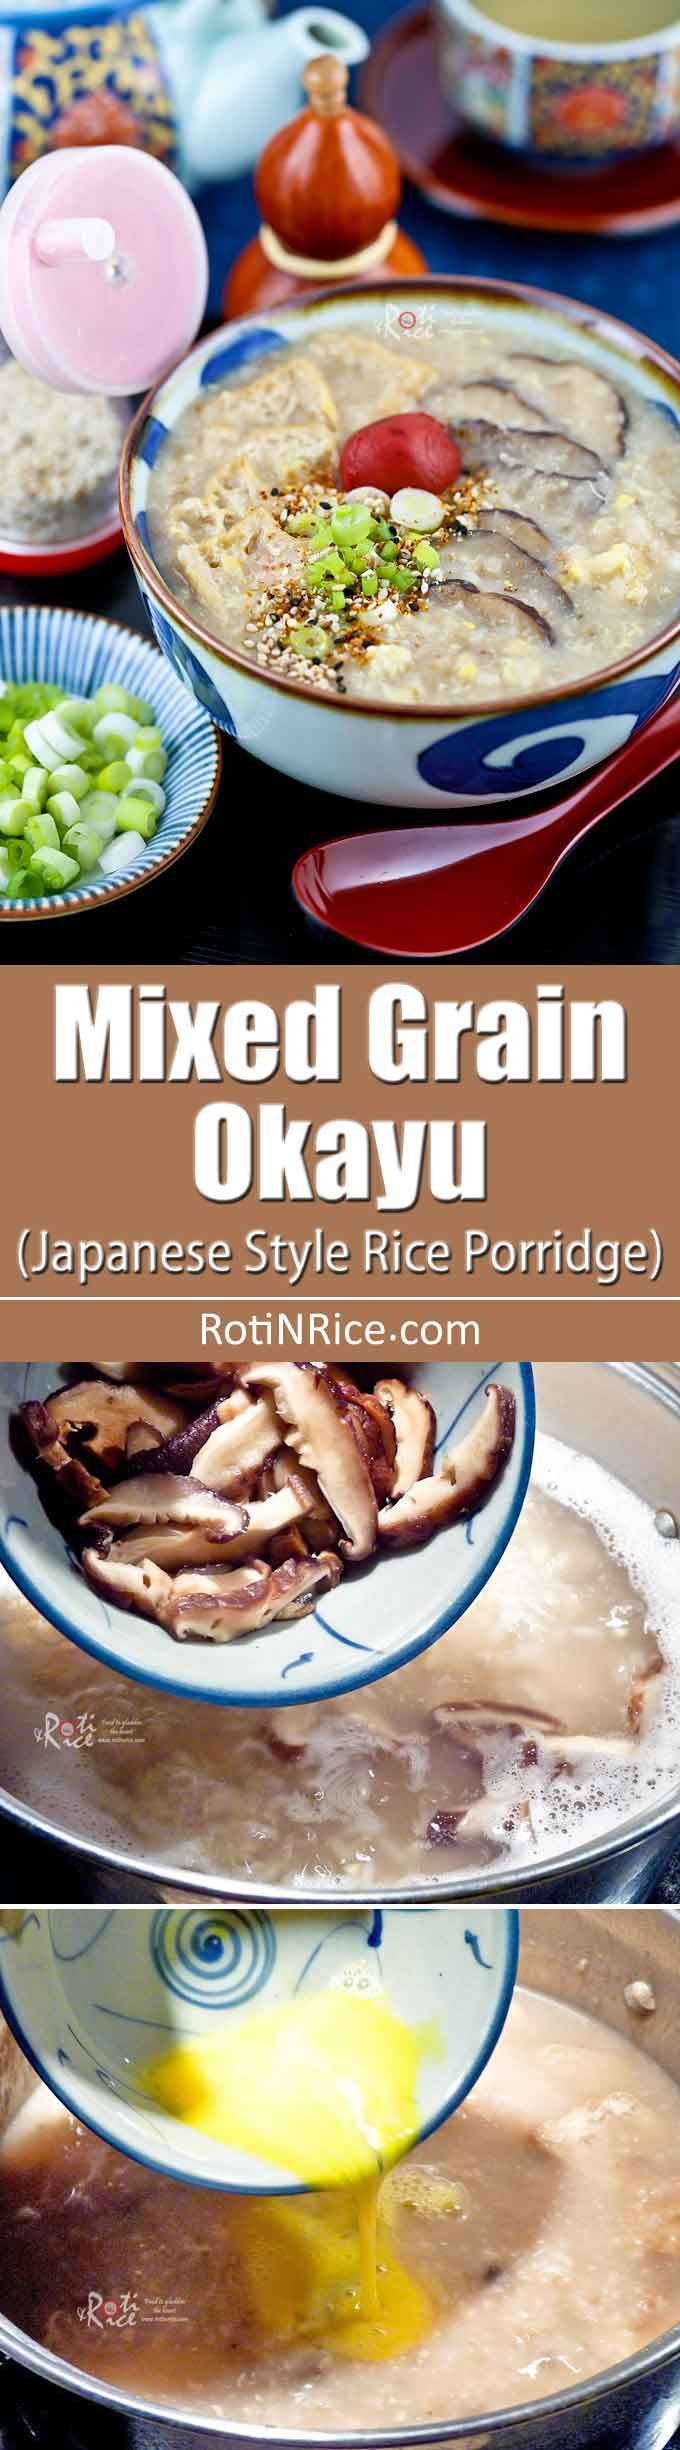 Nutritious and delicious Mixed Grain Okayu with brown rice, buckwheat groats, mushrooms, and tofu puffs. Makes a satisfying and tasty breakfast. | RotiNRice.com